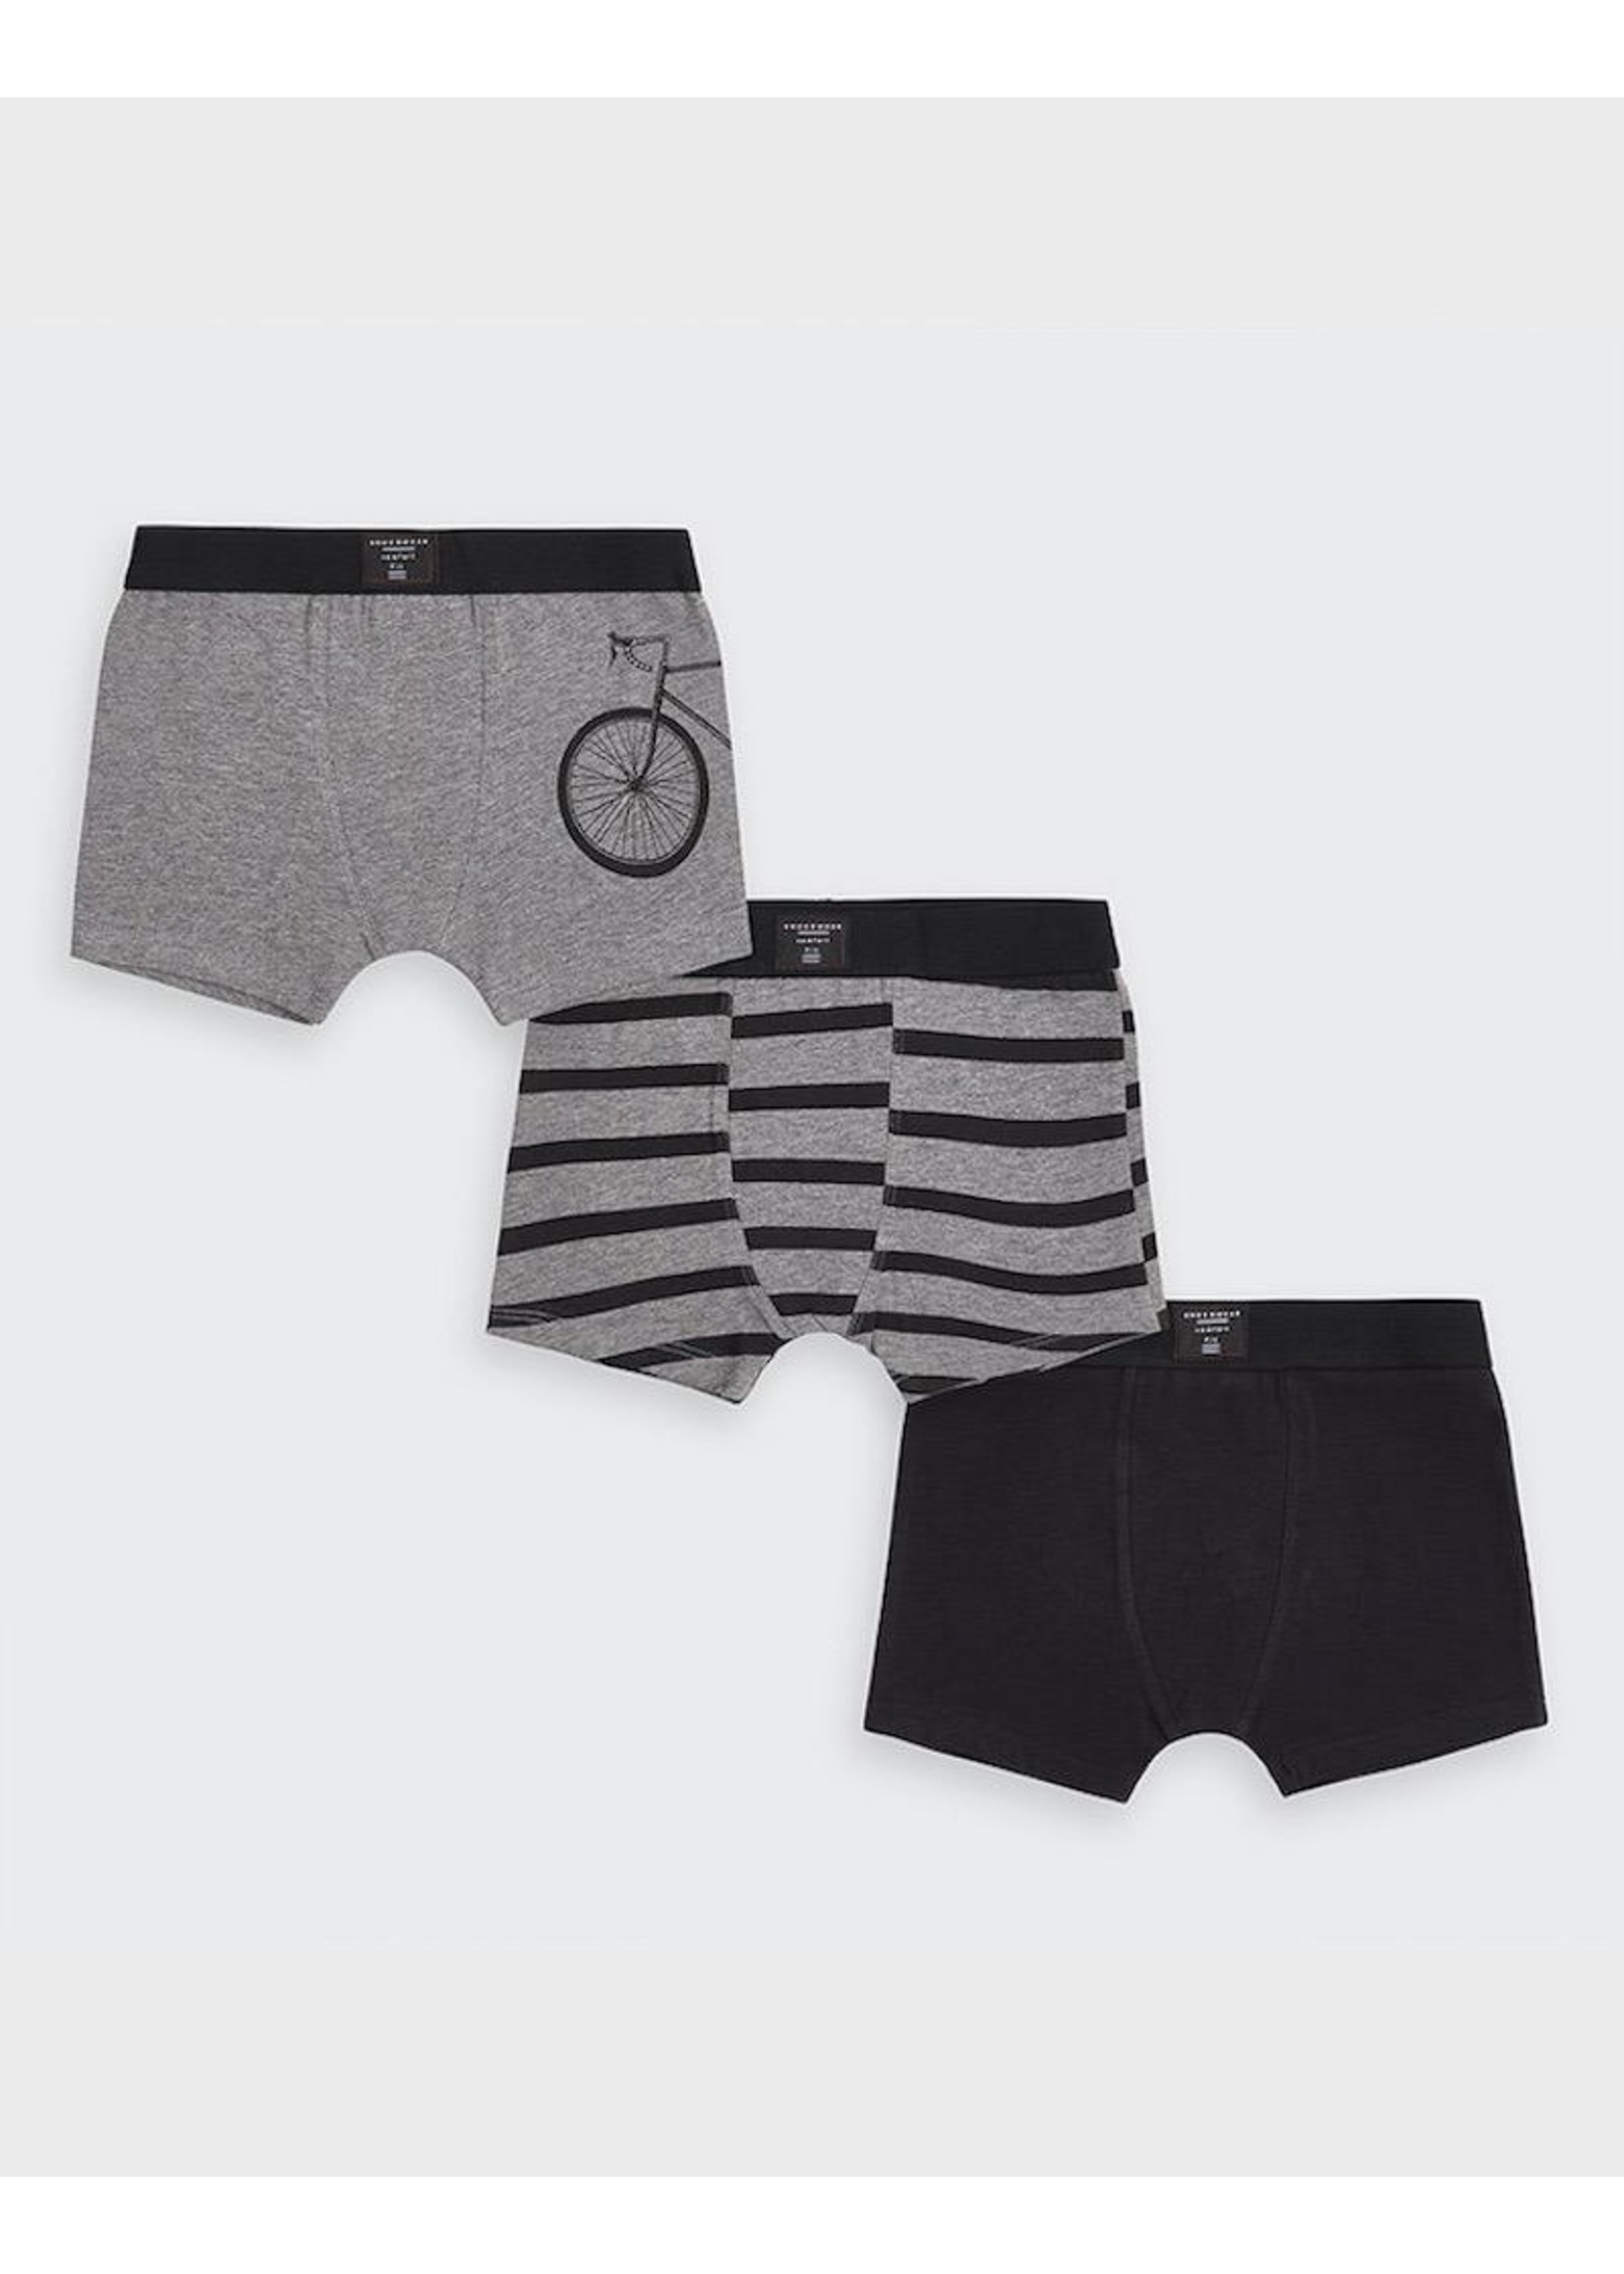 Mayoral Mayoral, Bicycle 3 piece Boxers Set in Coal